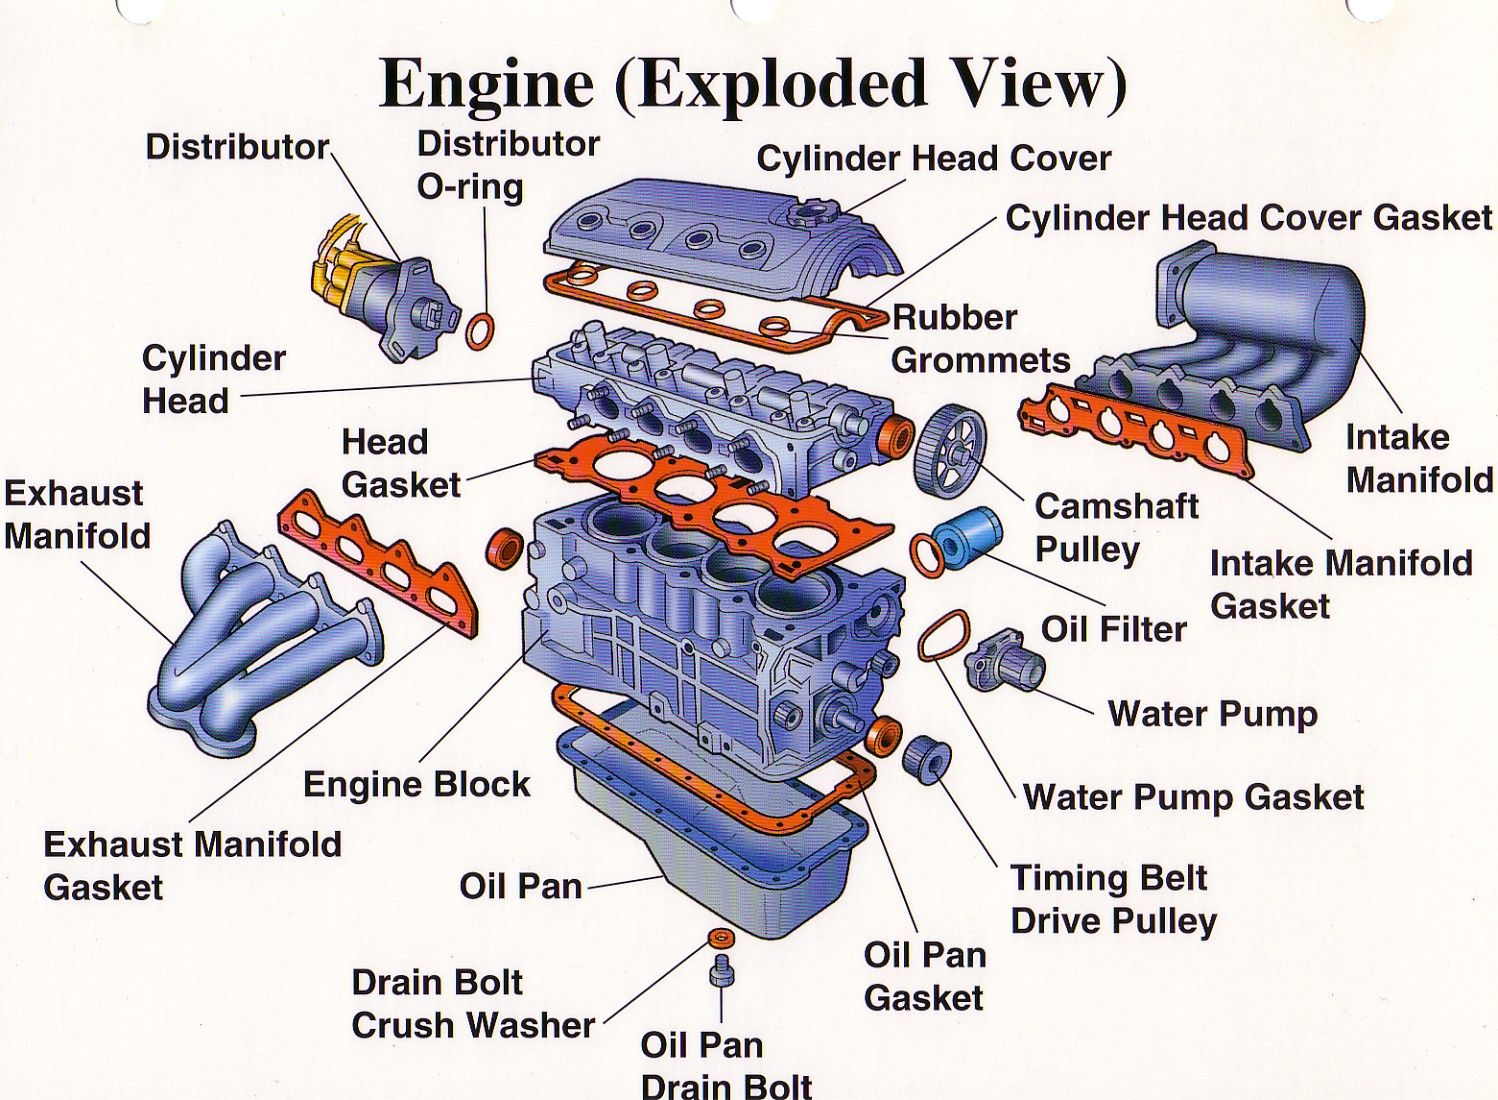 engine parts | HDABOB.com » What makes the engine tick … | Engines …